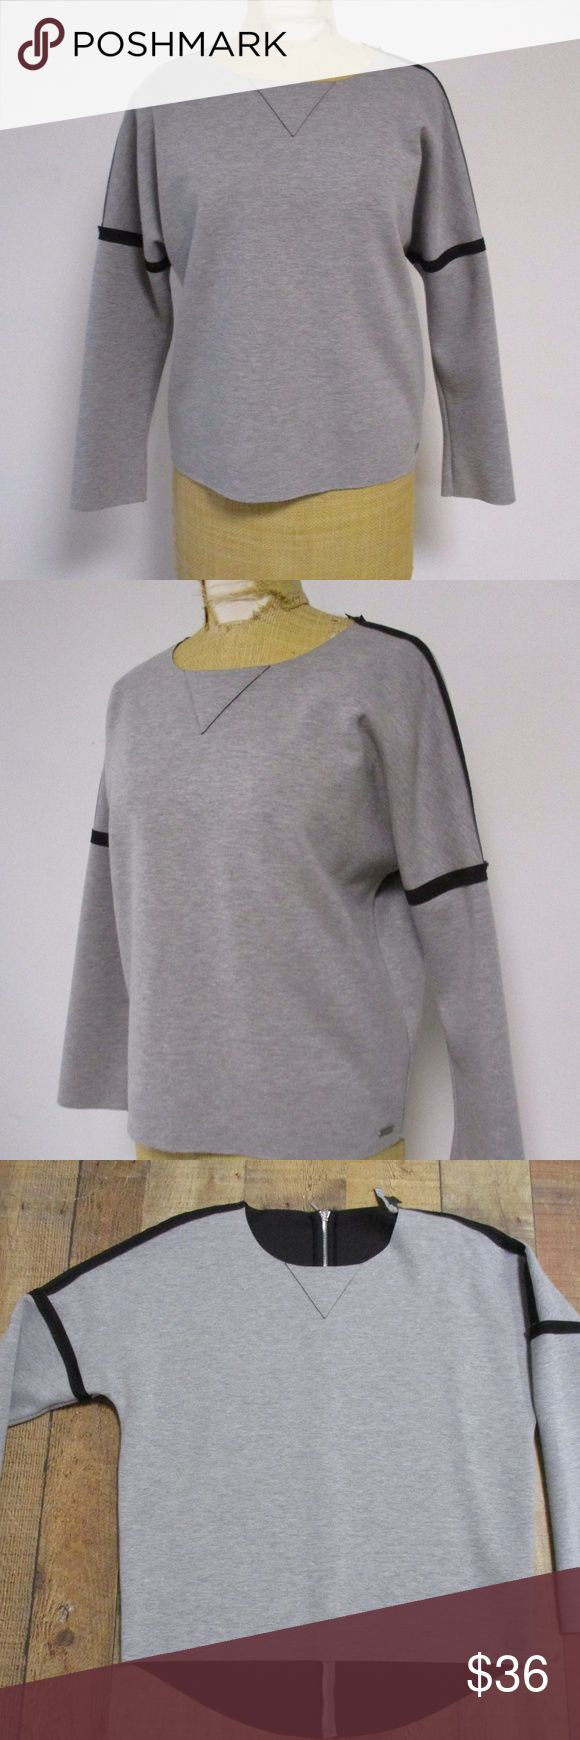 """Armani Exchange Sweatshirt Top Small Description  Beautiful top from Armani Exchange in size small  Gray with black trim  Polyester/cotton face with polyester/spandex back  Machine wash inside out  Loose fit  Exposed zipper in back  Looks like a sweatshirt, but dressier  Armani tag inside needs a stitch to fully attach, otherwise top is in great shape  Bust- 21"""" laid flat to measure Length- 23"""" Sleeves- 24"""" Armani Exchange Tops Sweatshirts & Hoodies"""